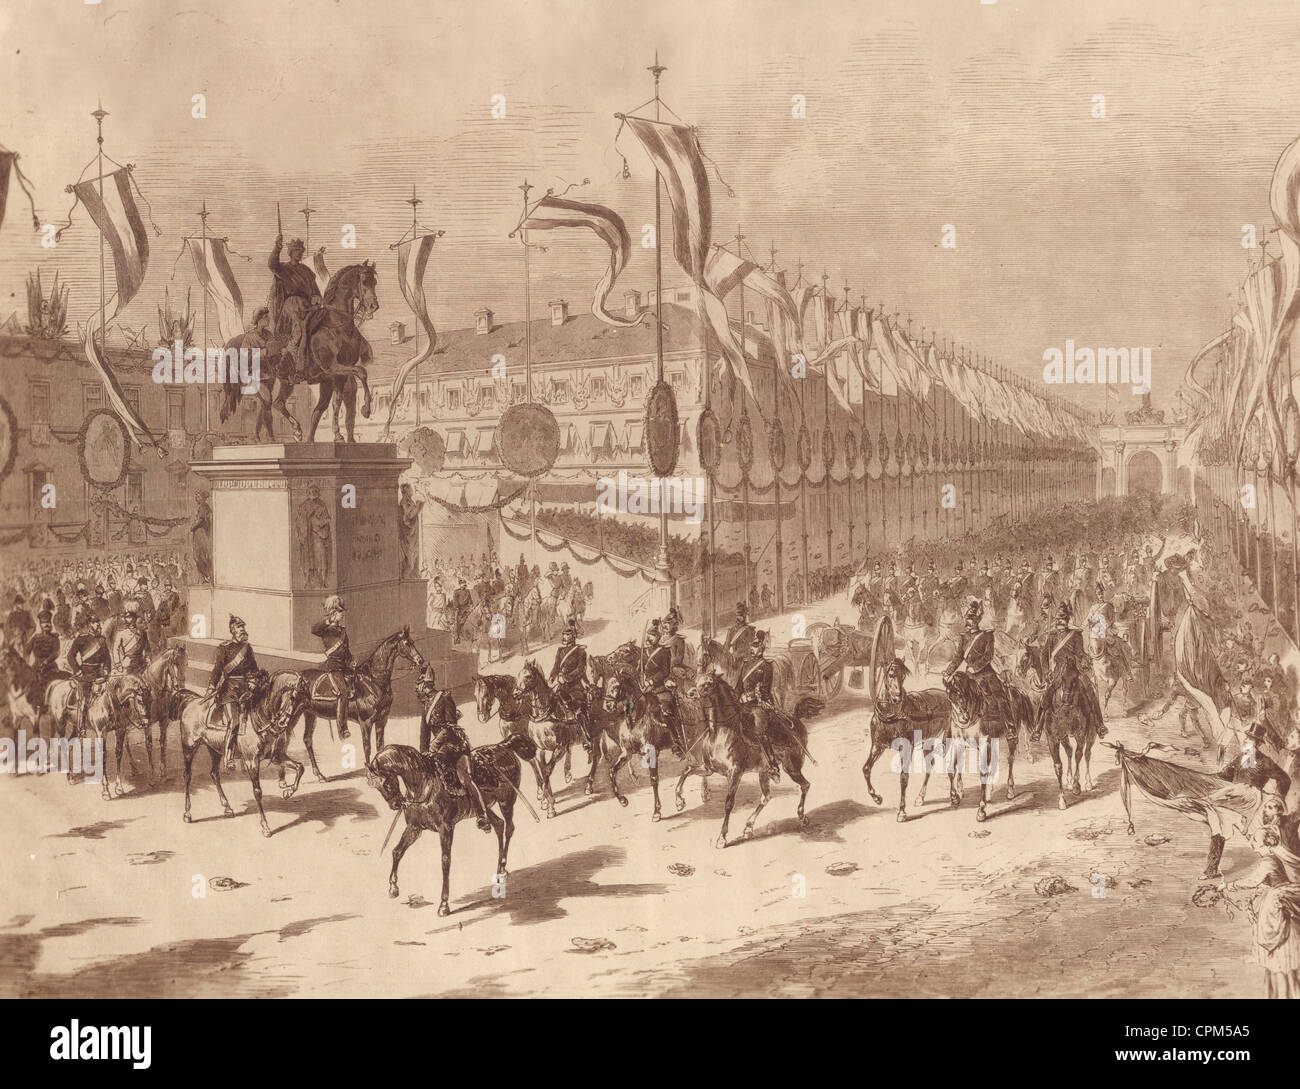 Return of the Bavarian troops after the Franco-Prussian War, 1871 - Stock Image